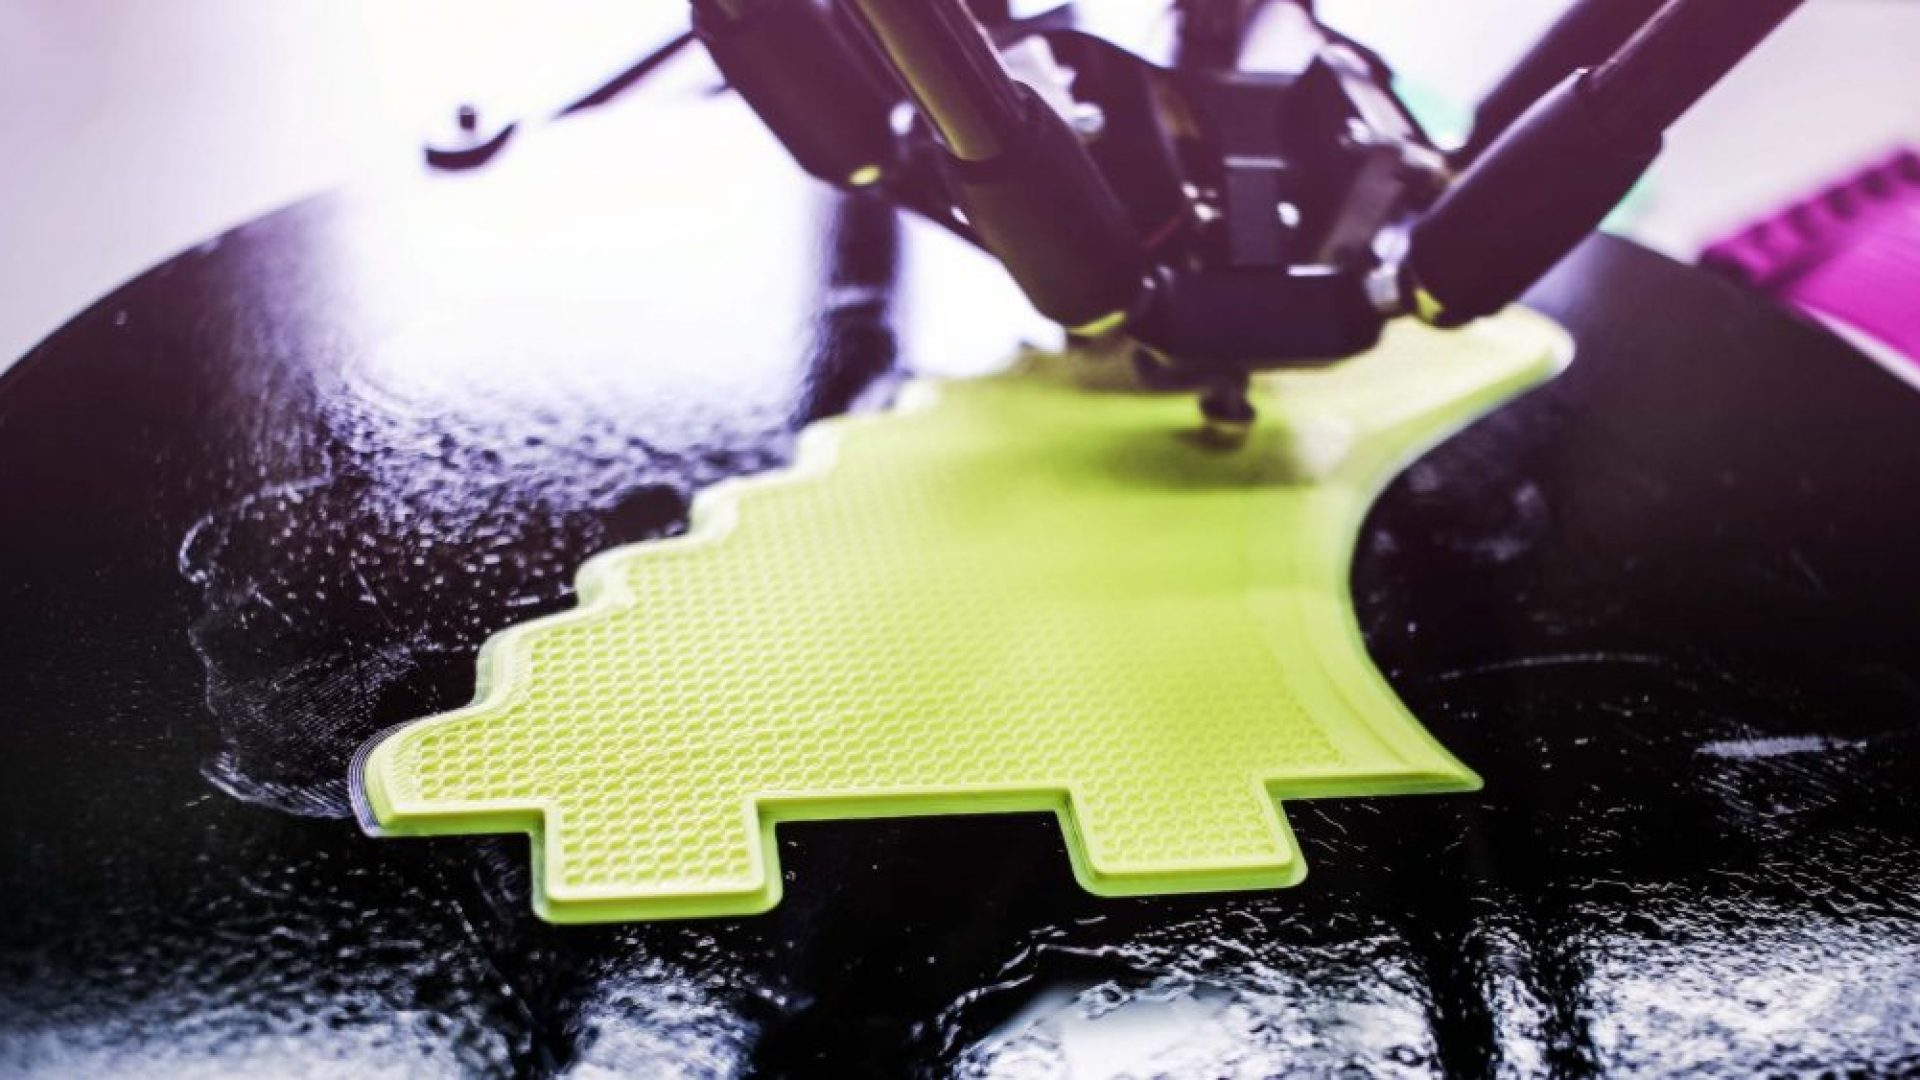 How to Design for 3D Printing